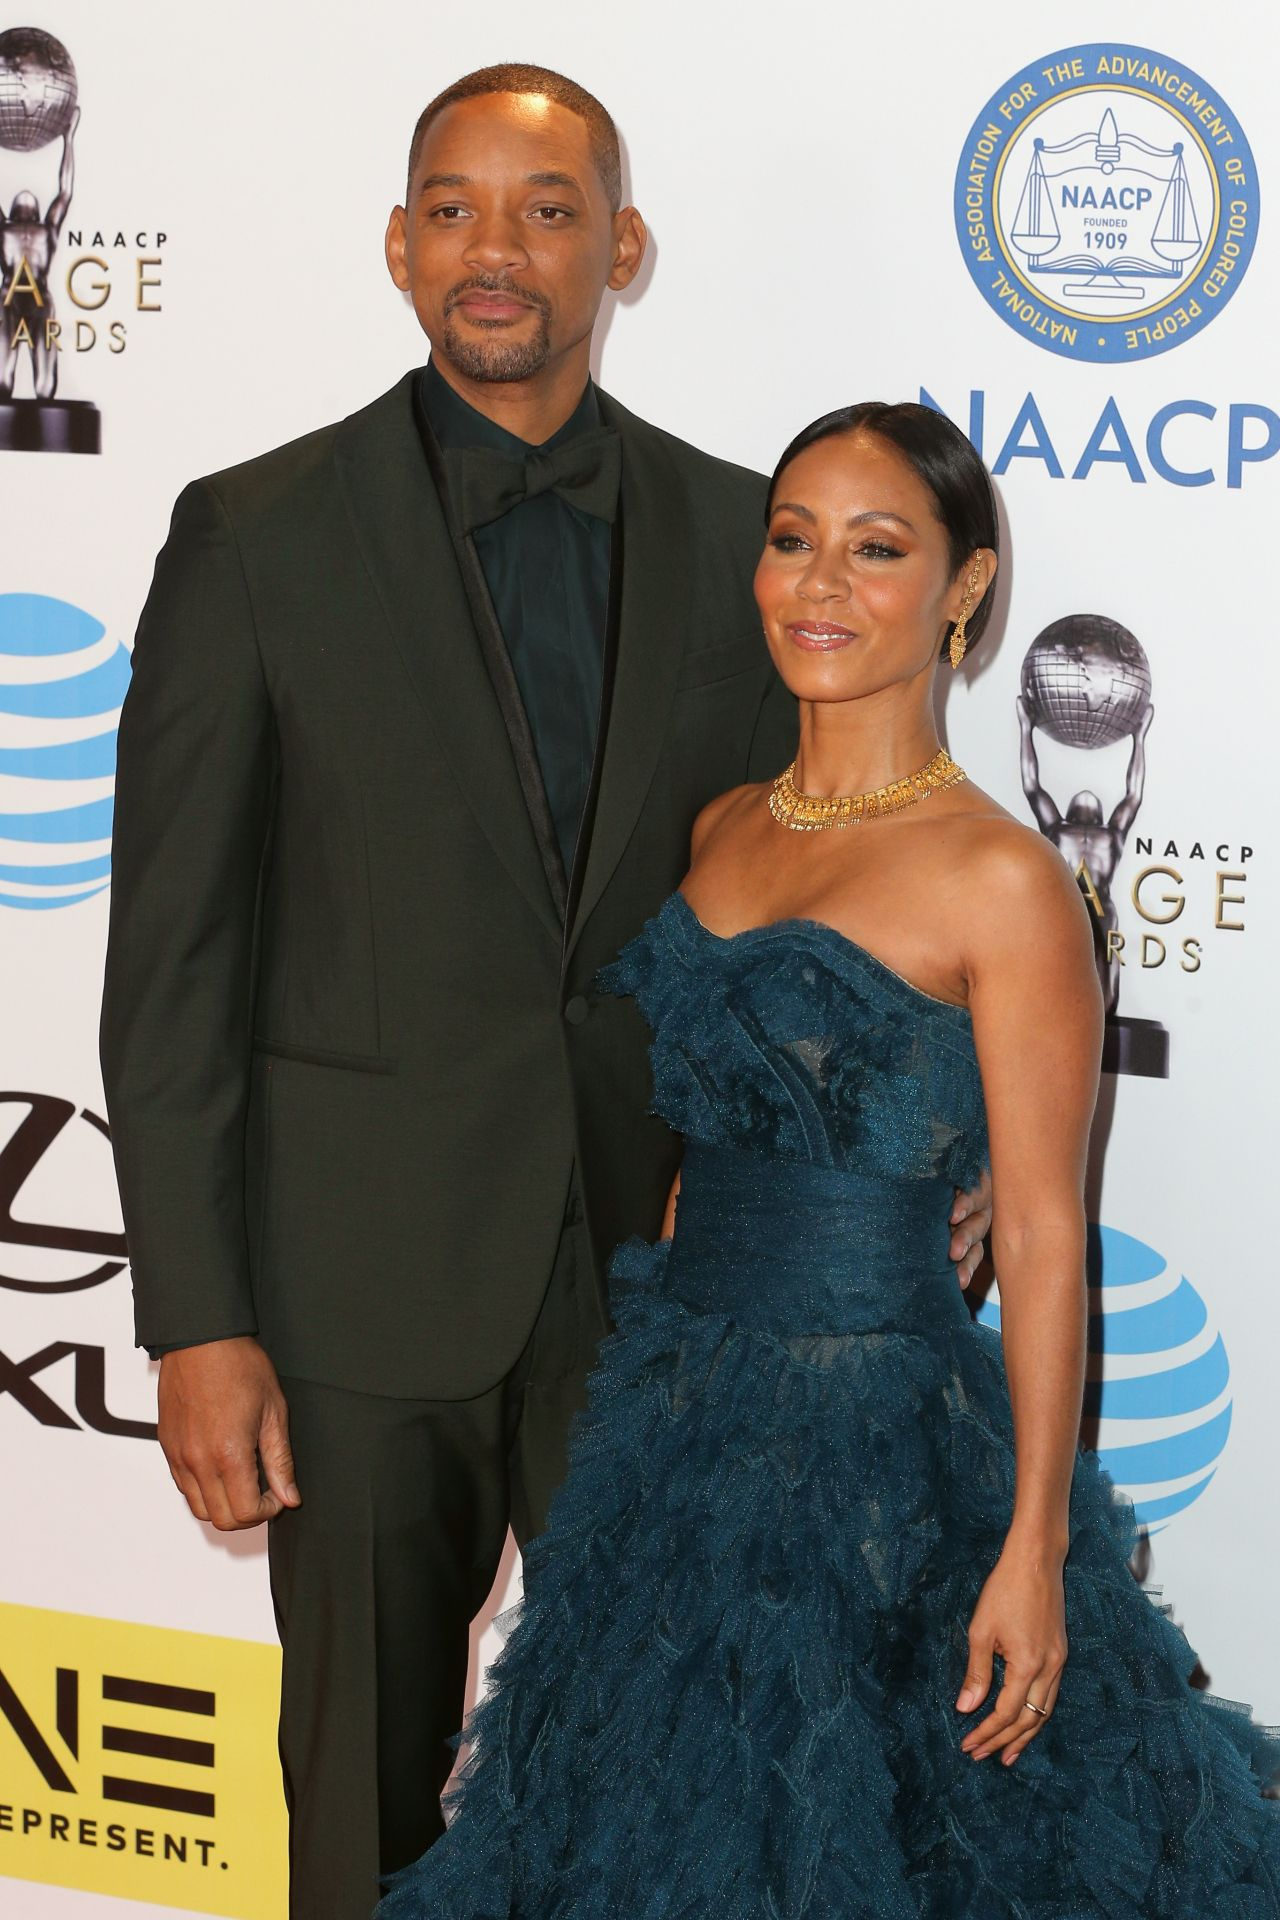 jada-pinkett-smith-naacp-image-awards-2016-presented-by-tv-one-in-pasadena-ca-10